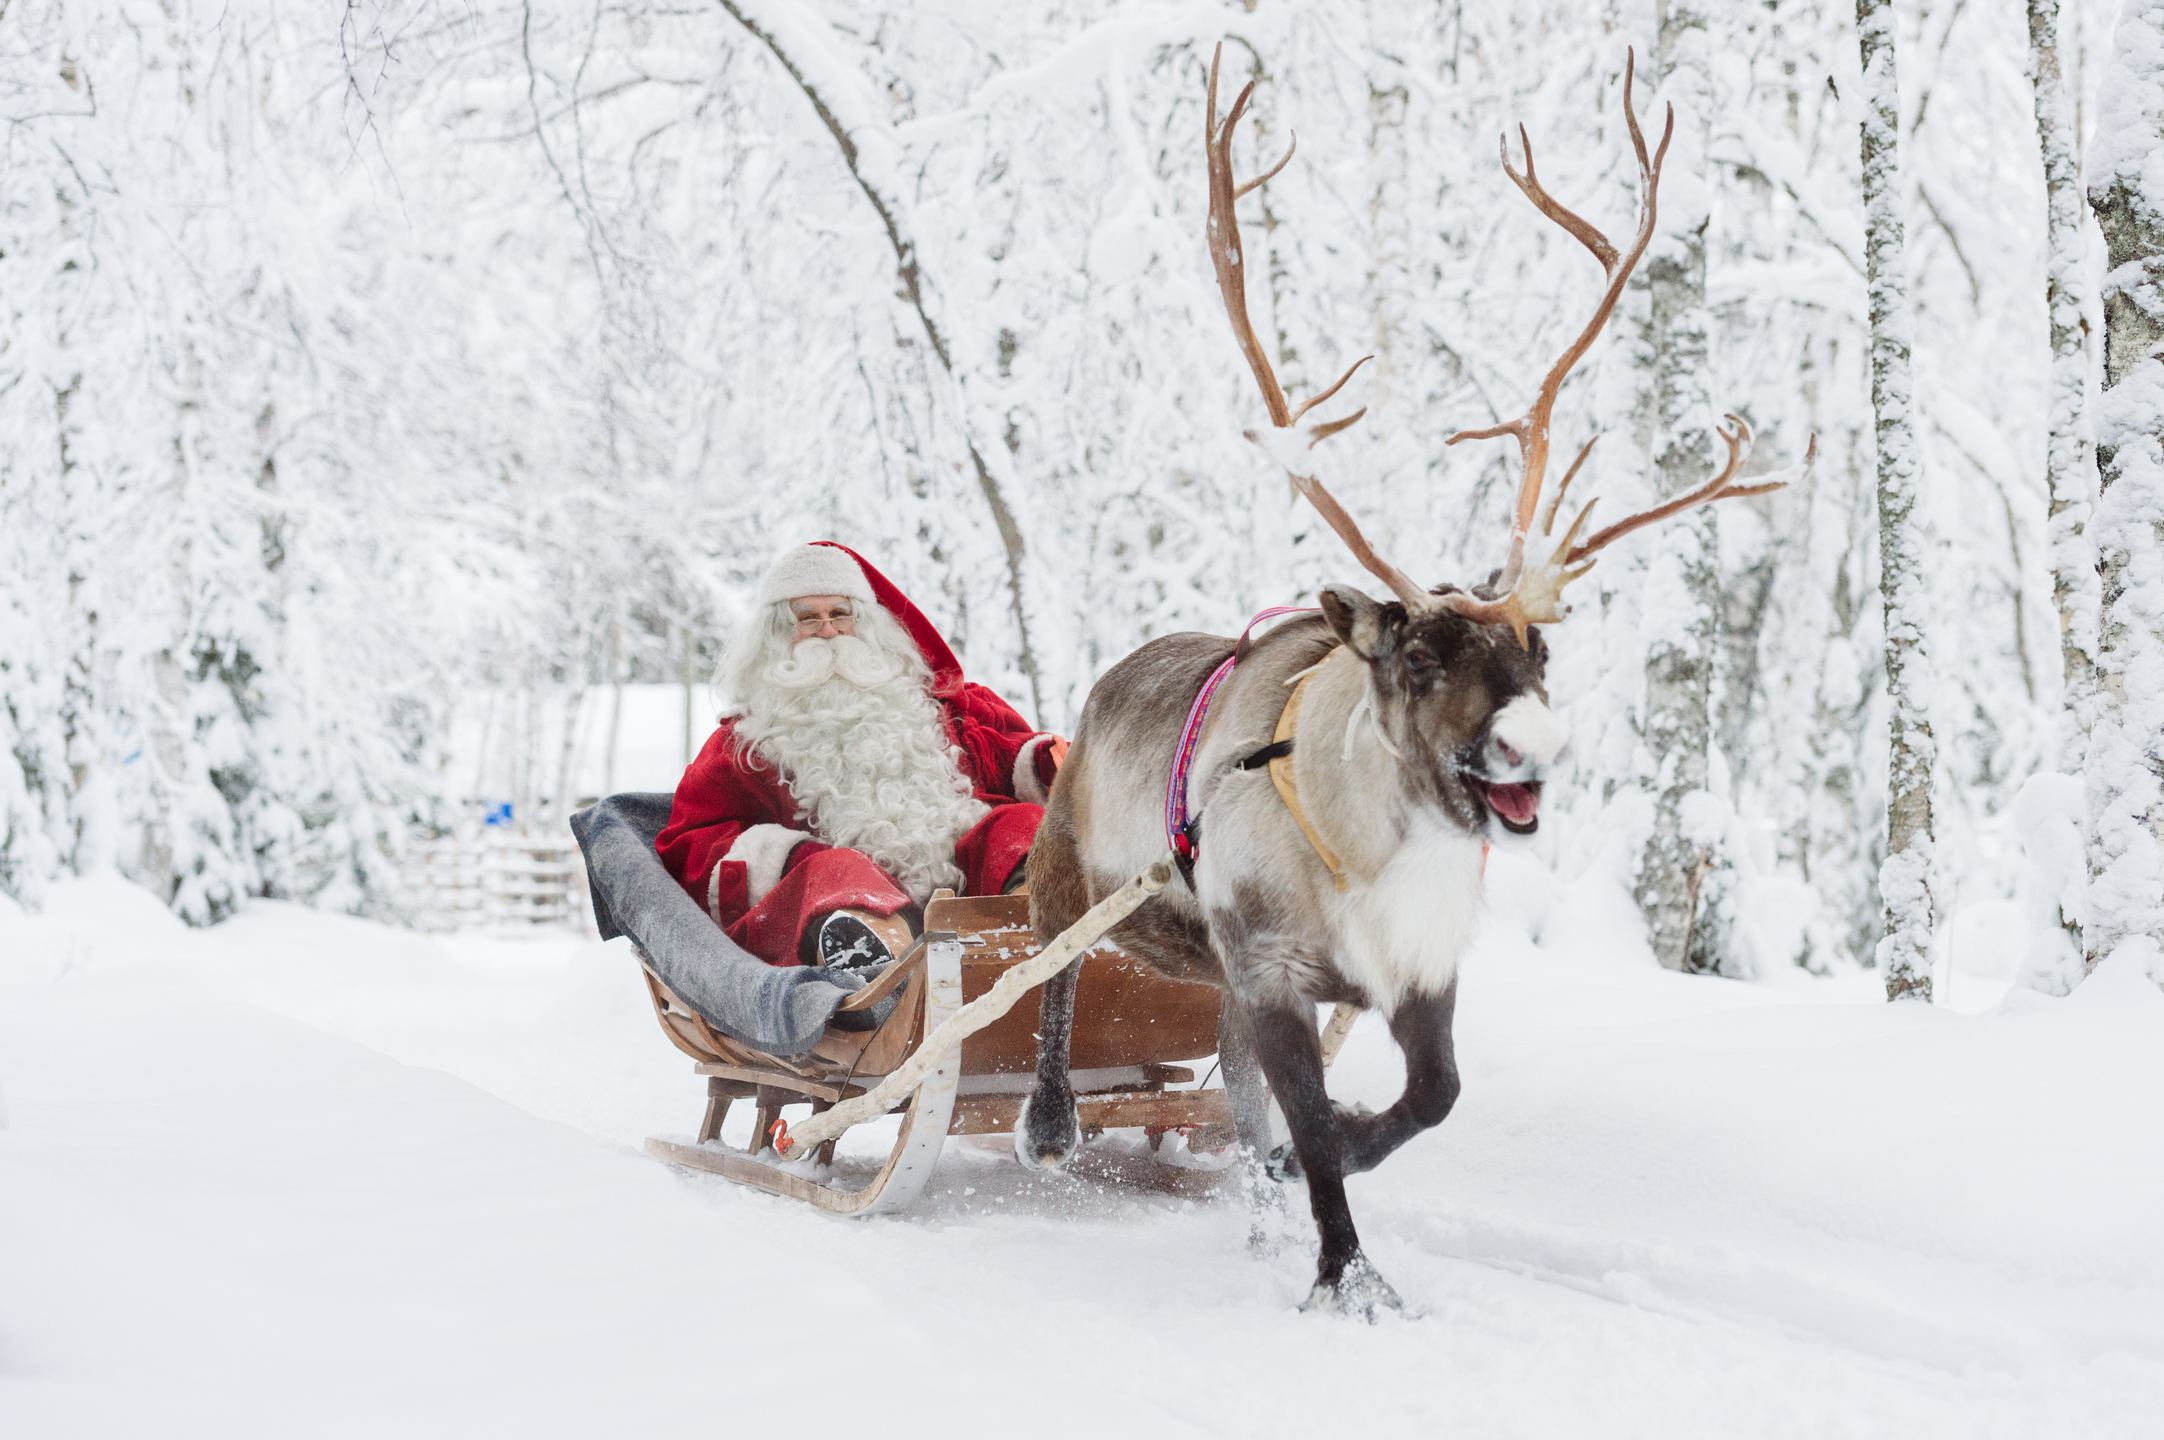 Santa Claus on a sleigh, reindeer and a snowy landscape.